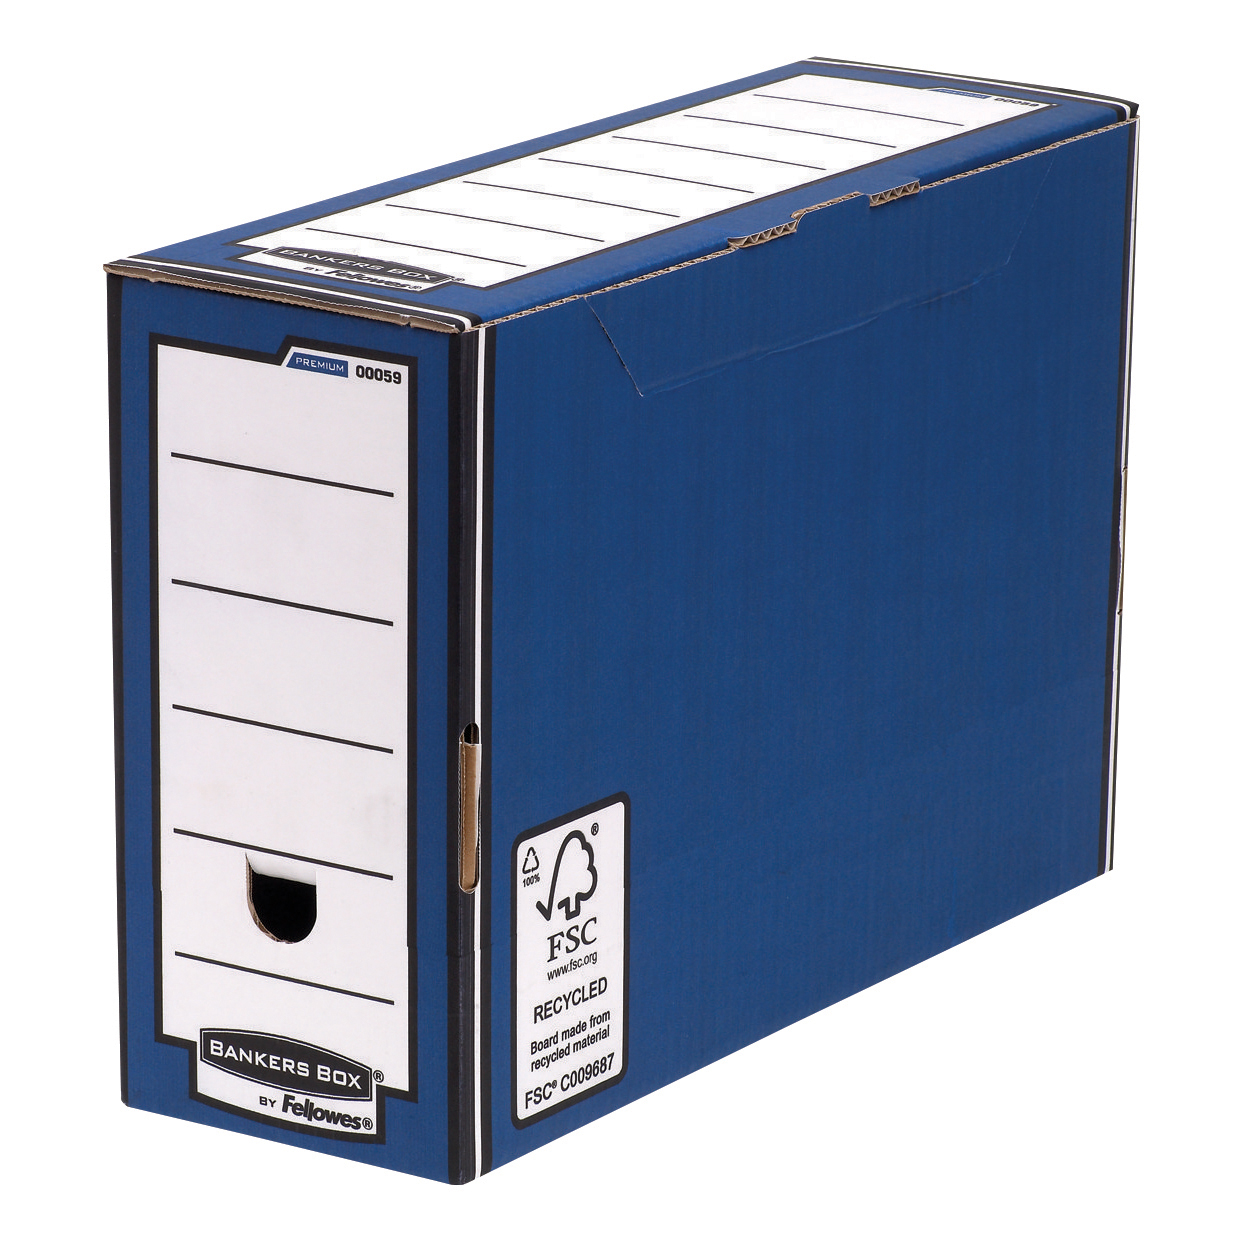 Bankers Box by Fellowes Premium Transfer File Blue and White Ref 5902-FF [Pack 10]